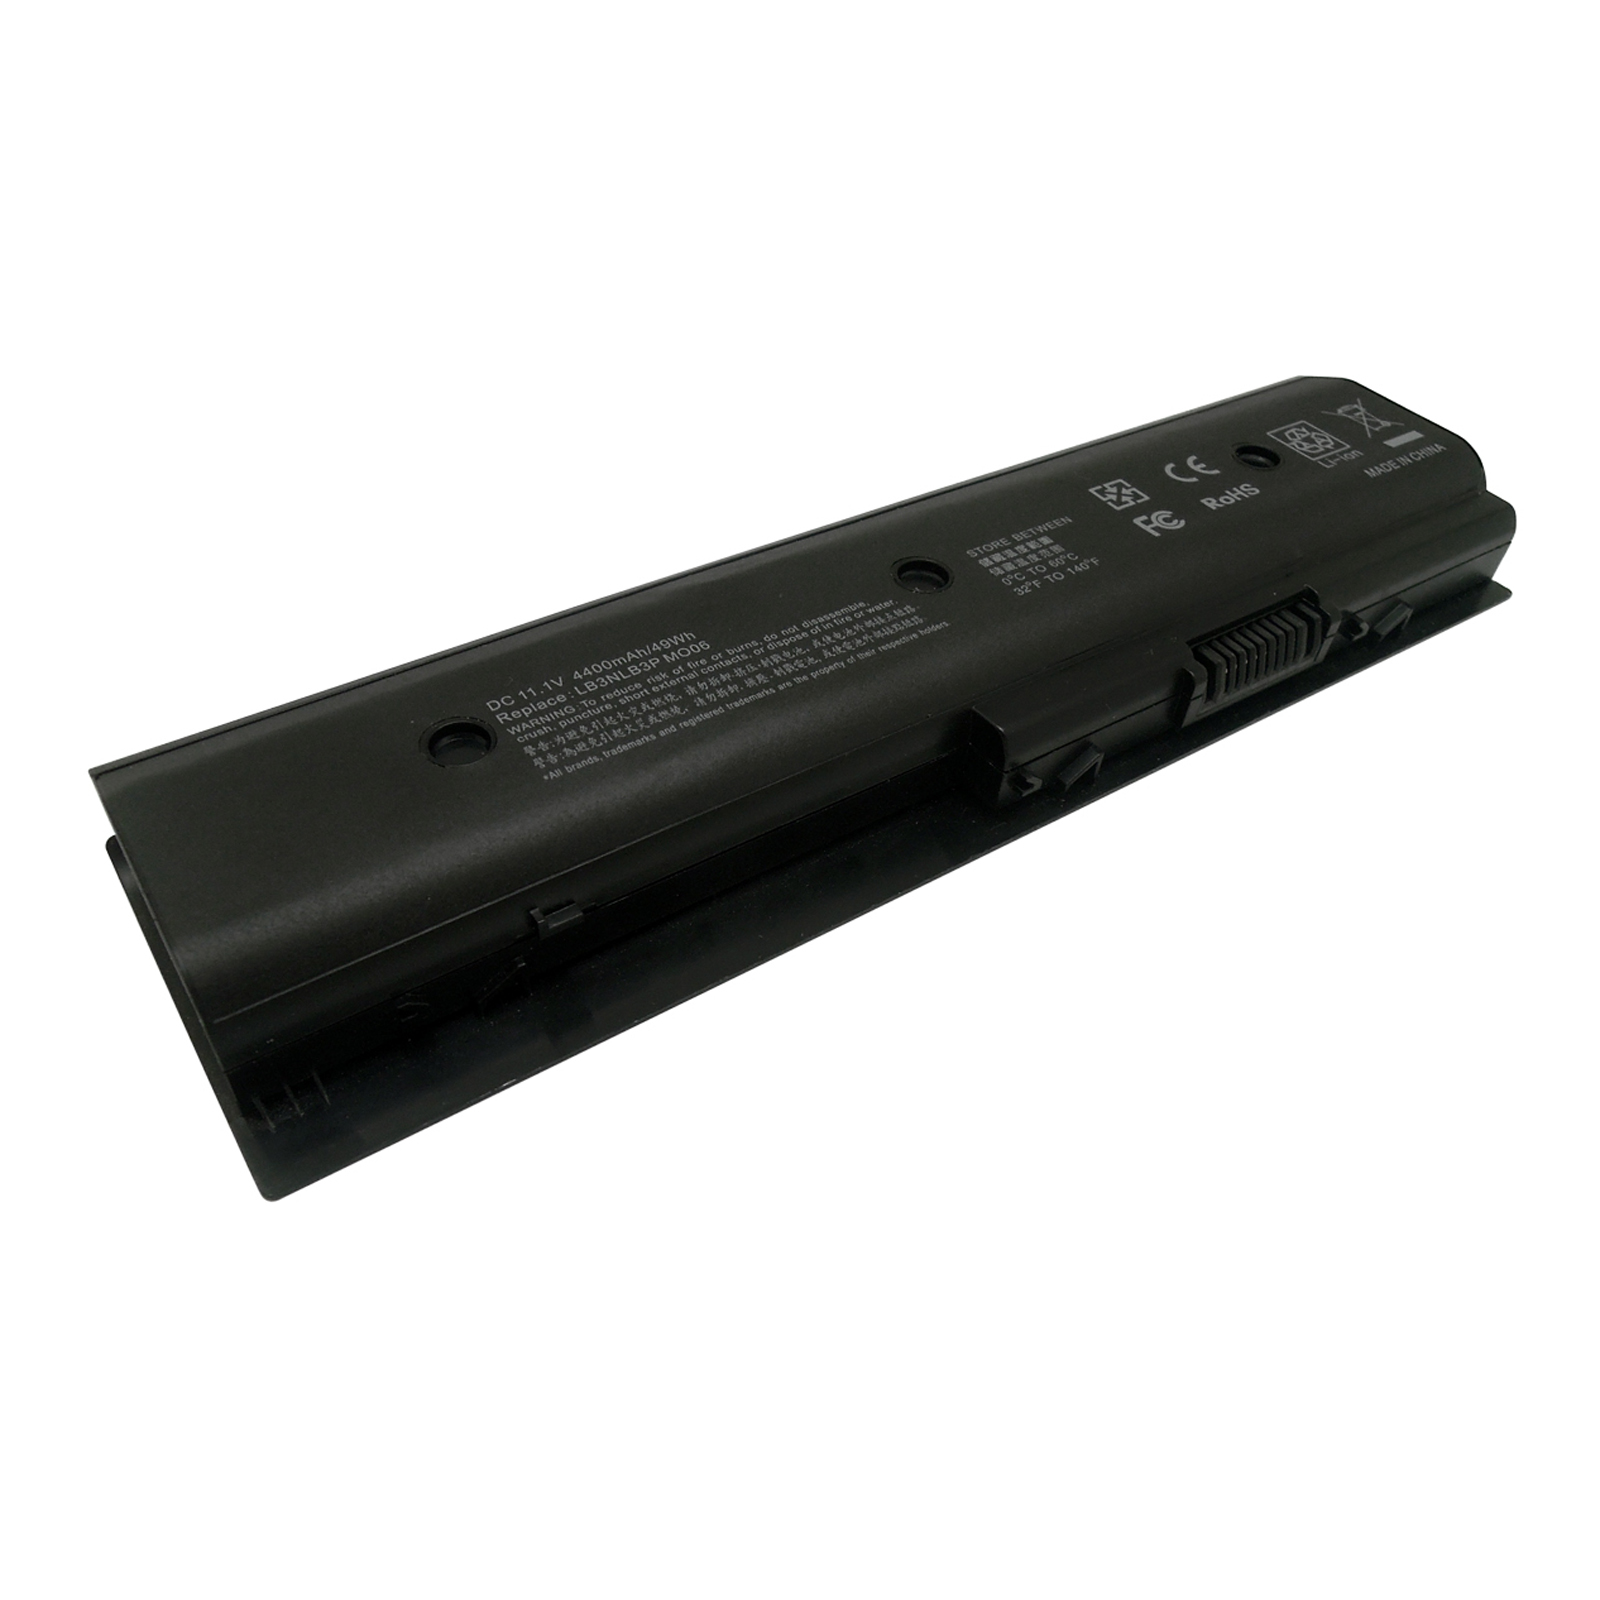 Superb Choice - Batterie pour HP ENVY dv4-5218et - image 1 de 1